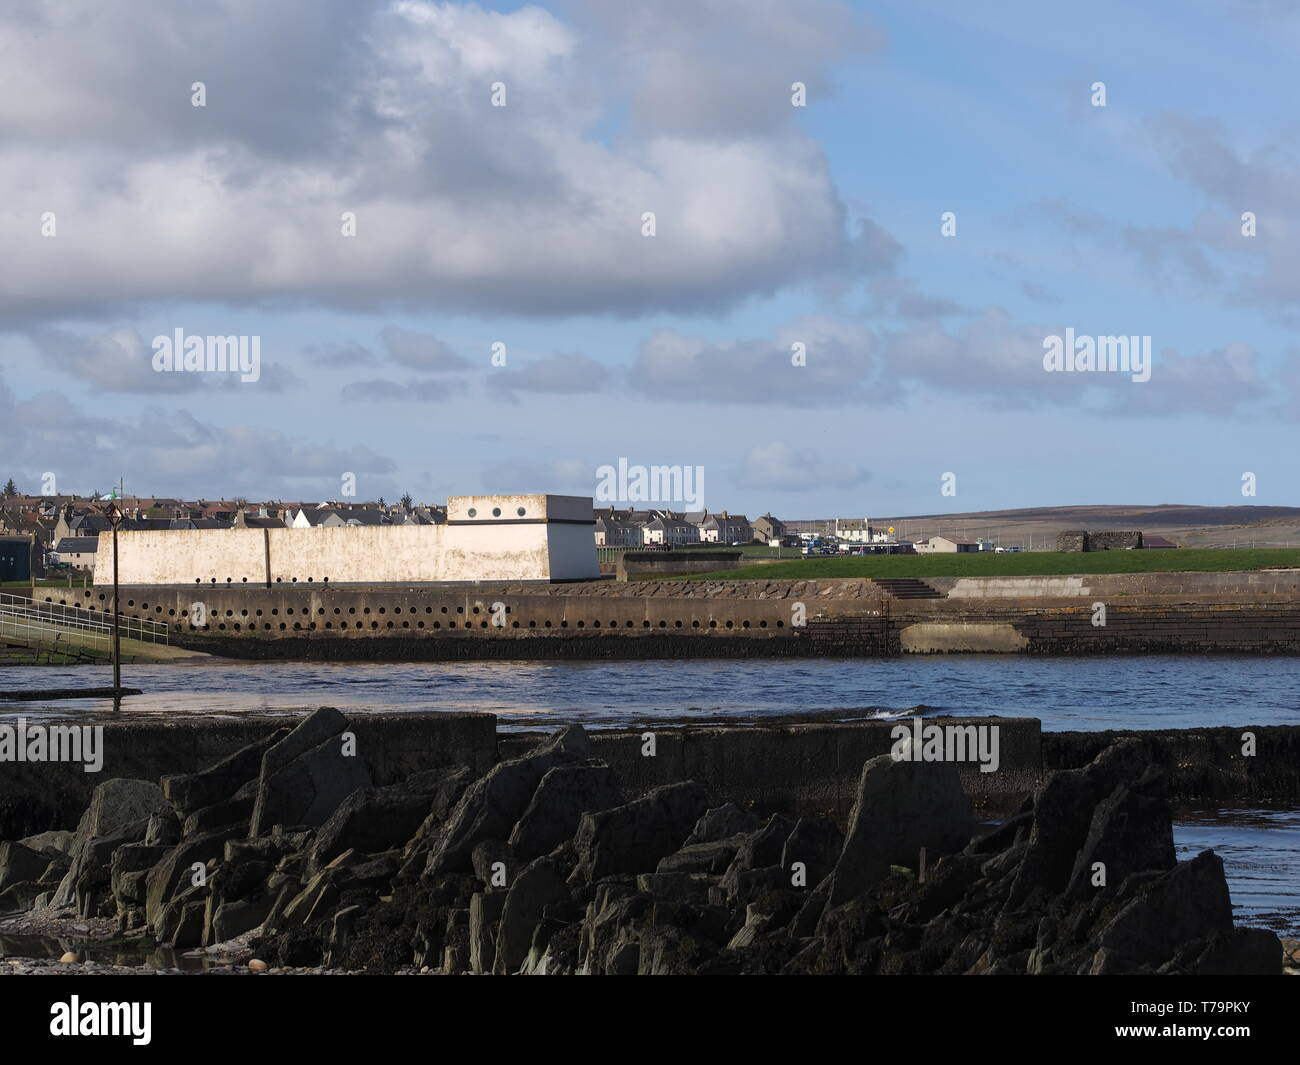 Waste Water Treatment Works Building Near Thurso Harbour with Thurso houses in the background and shoreline opposite Thurso castle. - Stock Image